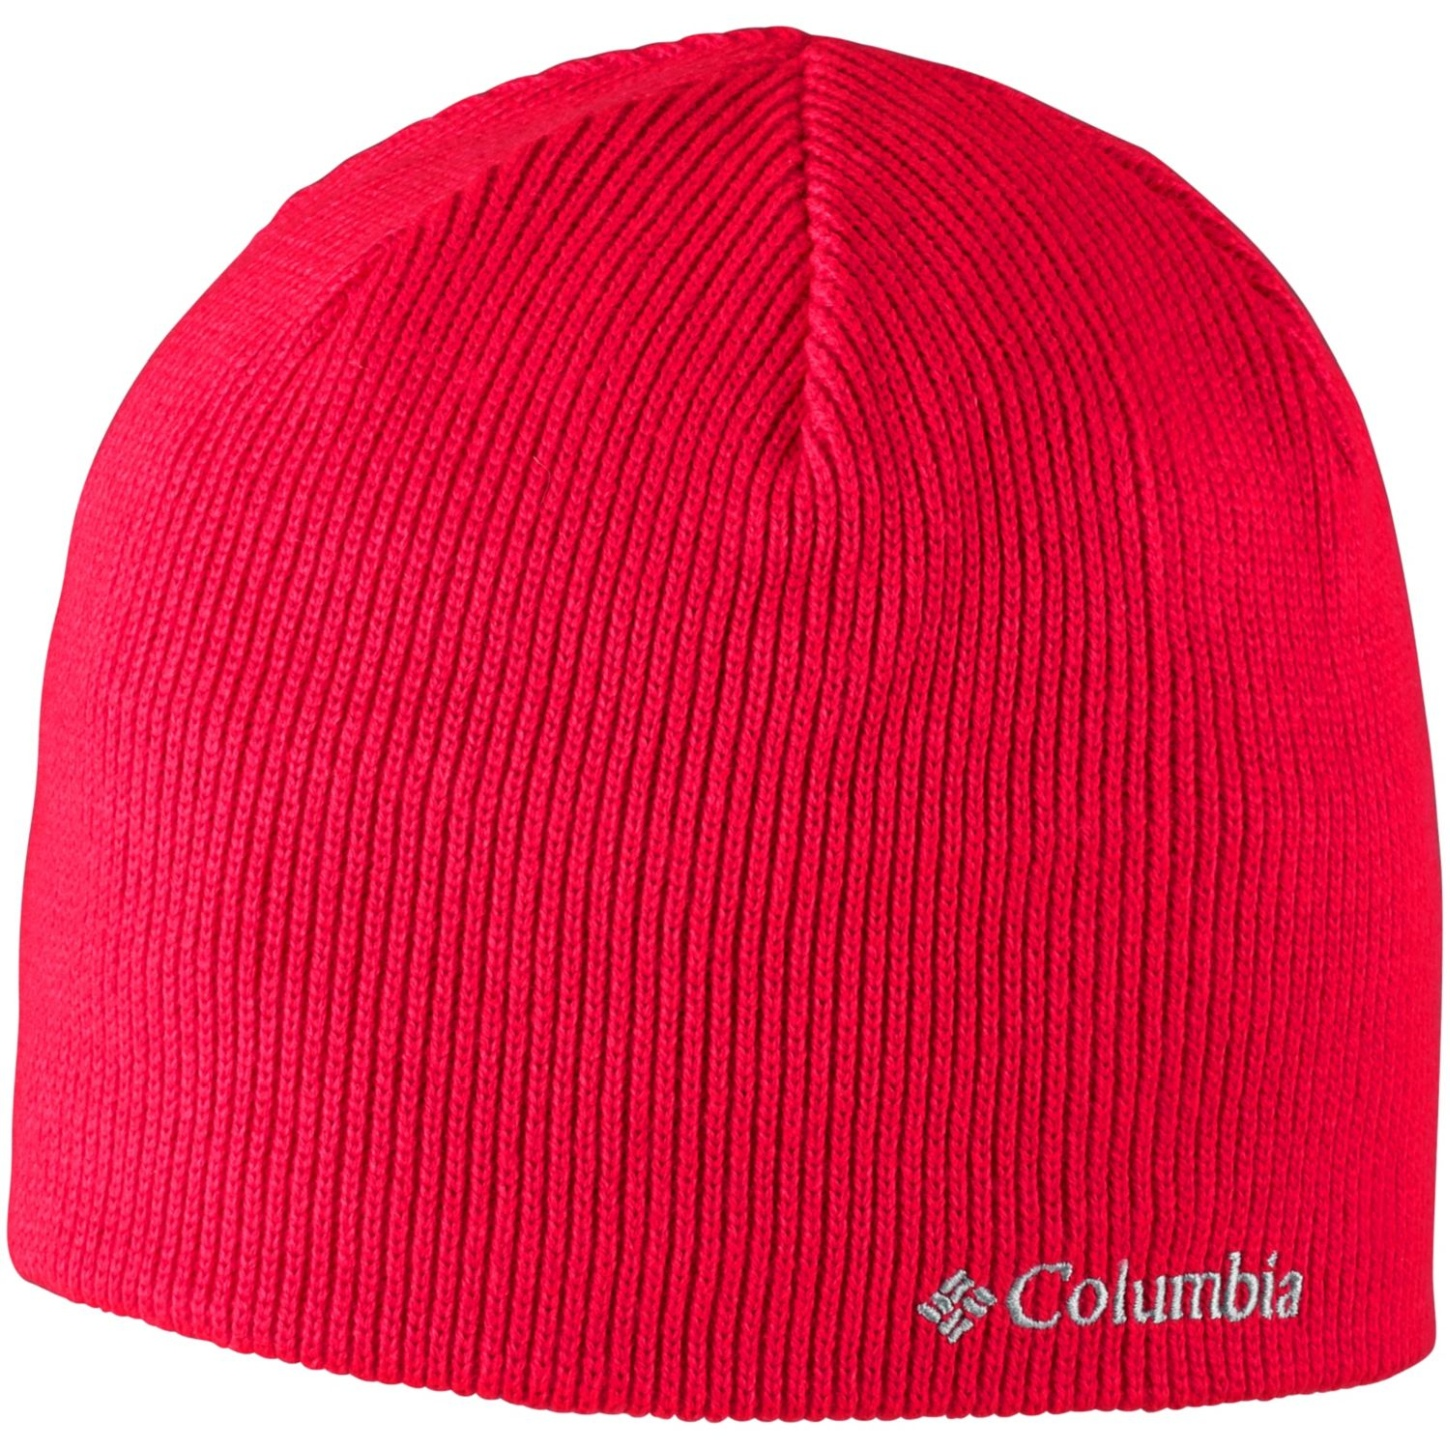 Columbia Bugaboo Beanie Hat Red Camellia-30